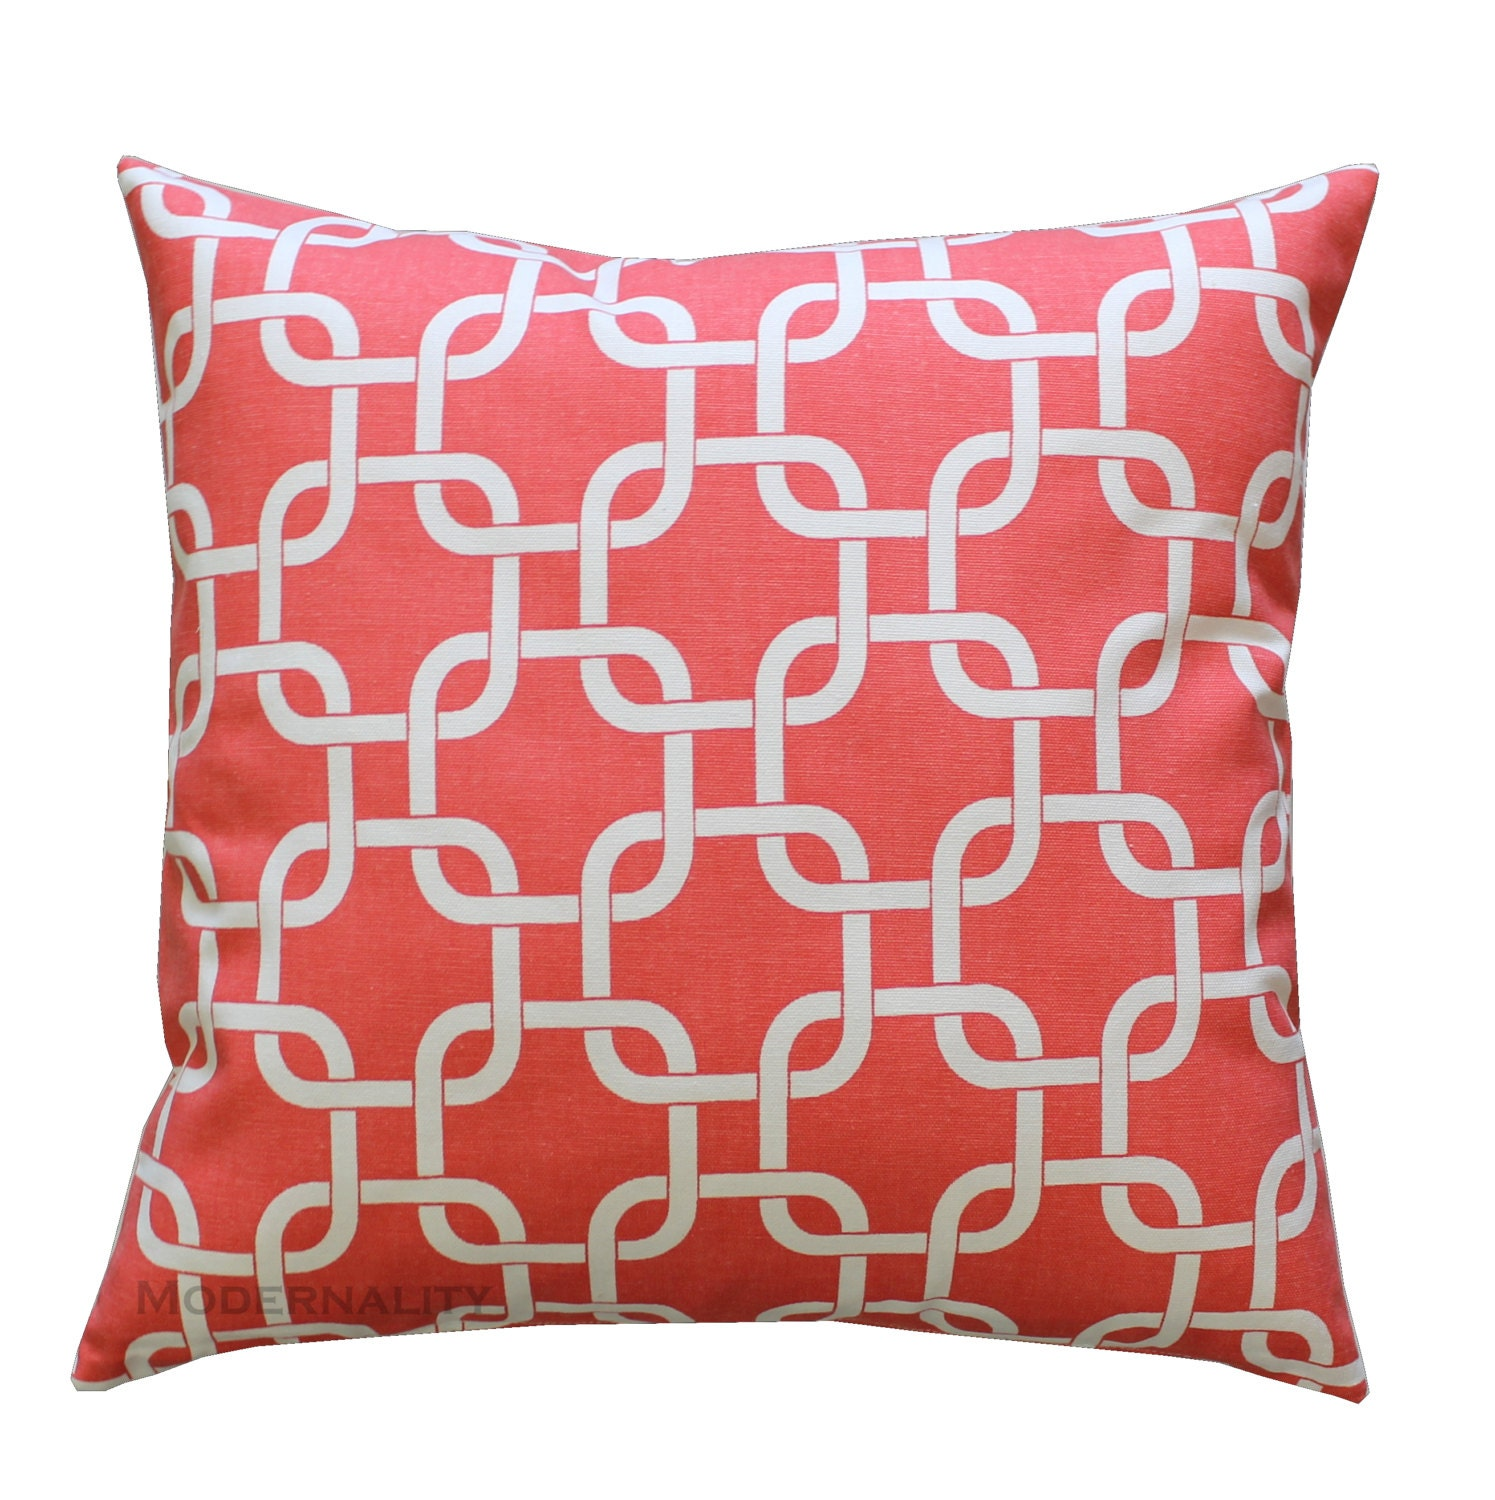 Coral Bed Throw Pillows : Coral Throw Pillow Gotcha Coral Pillow Cover Coral Bed